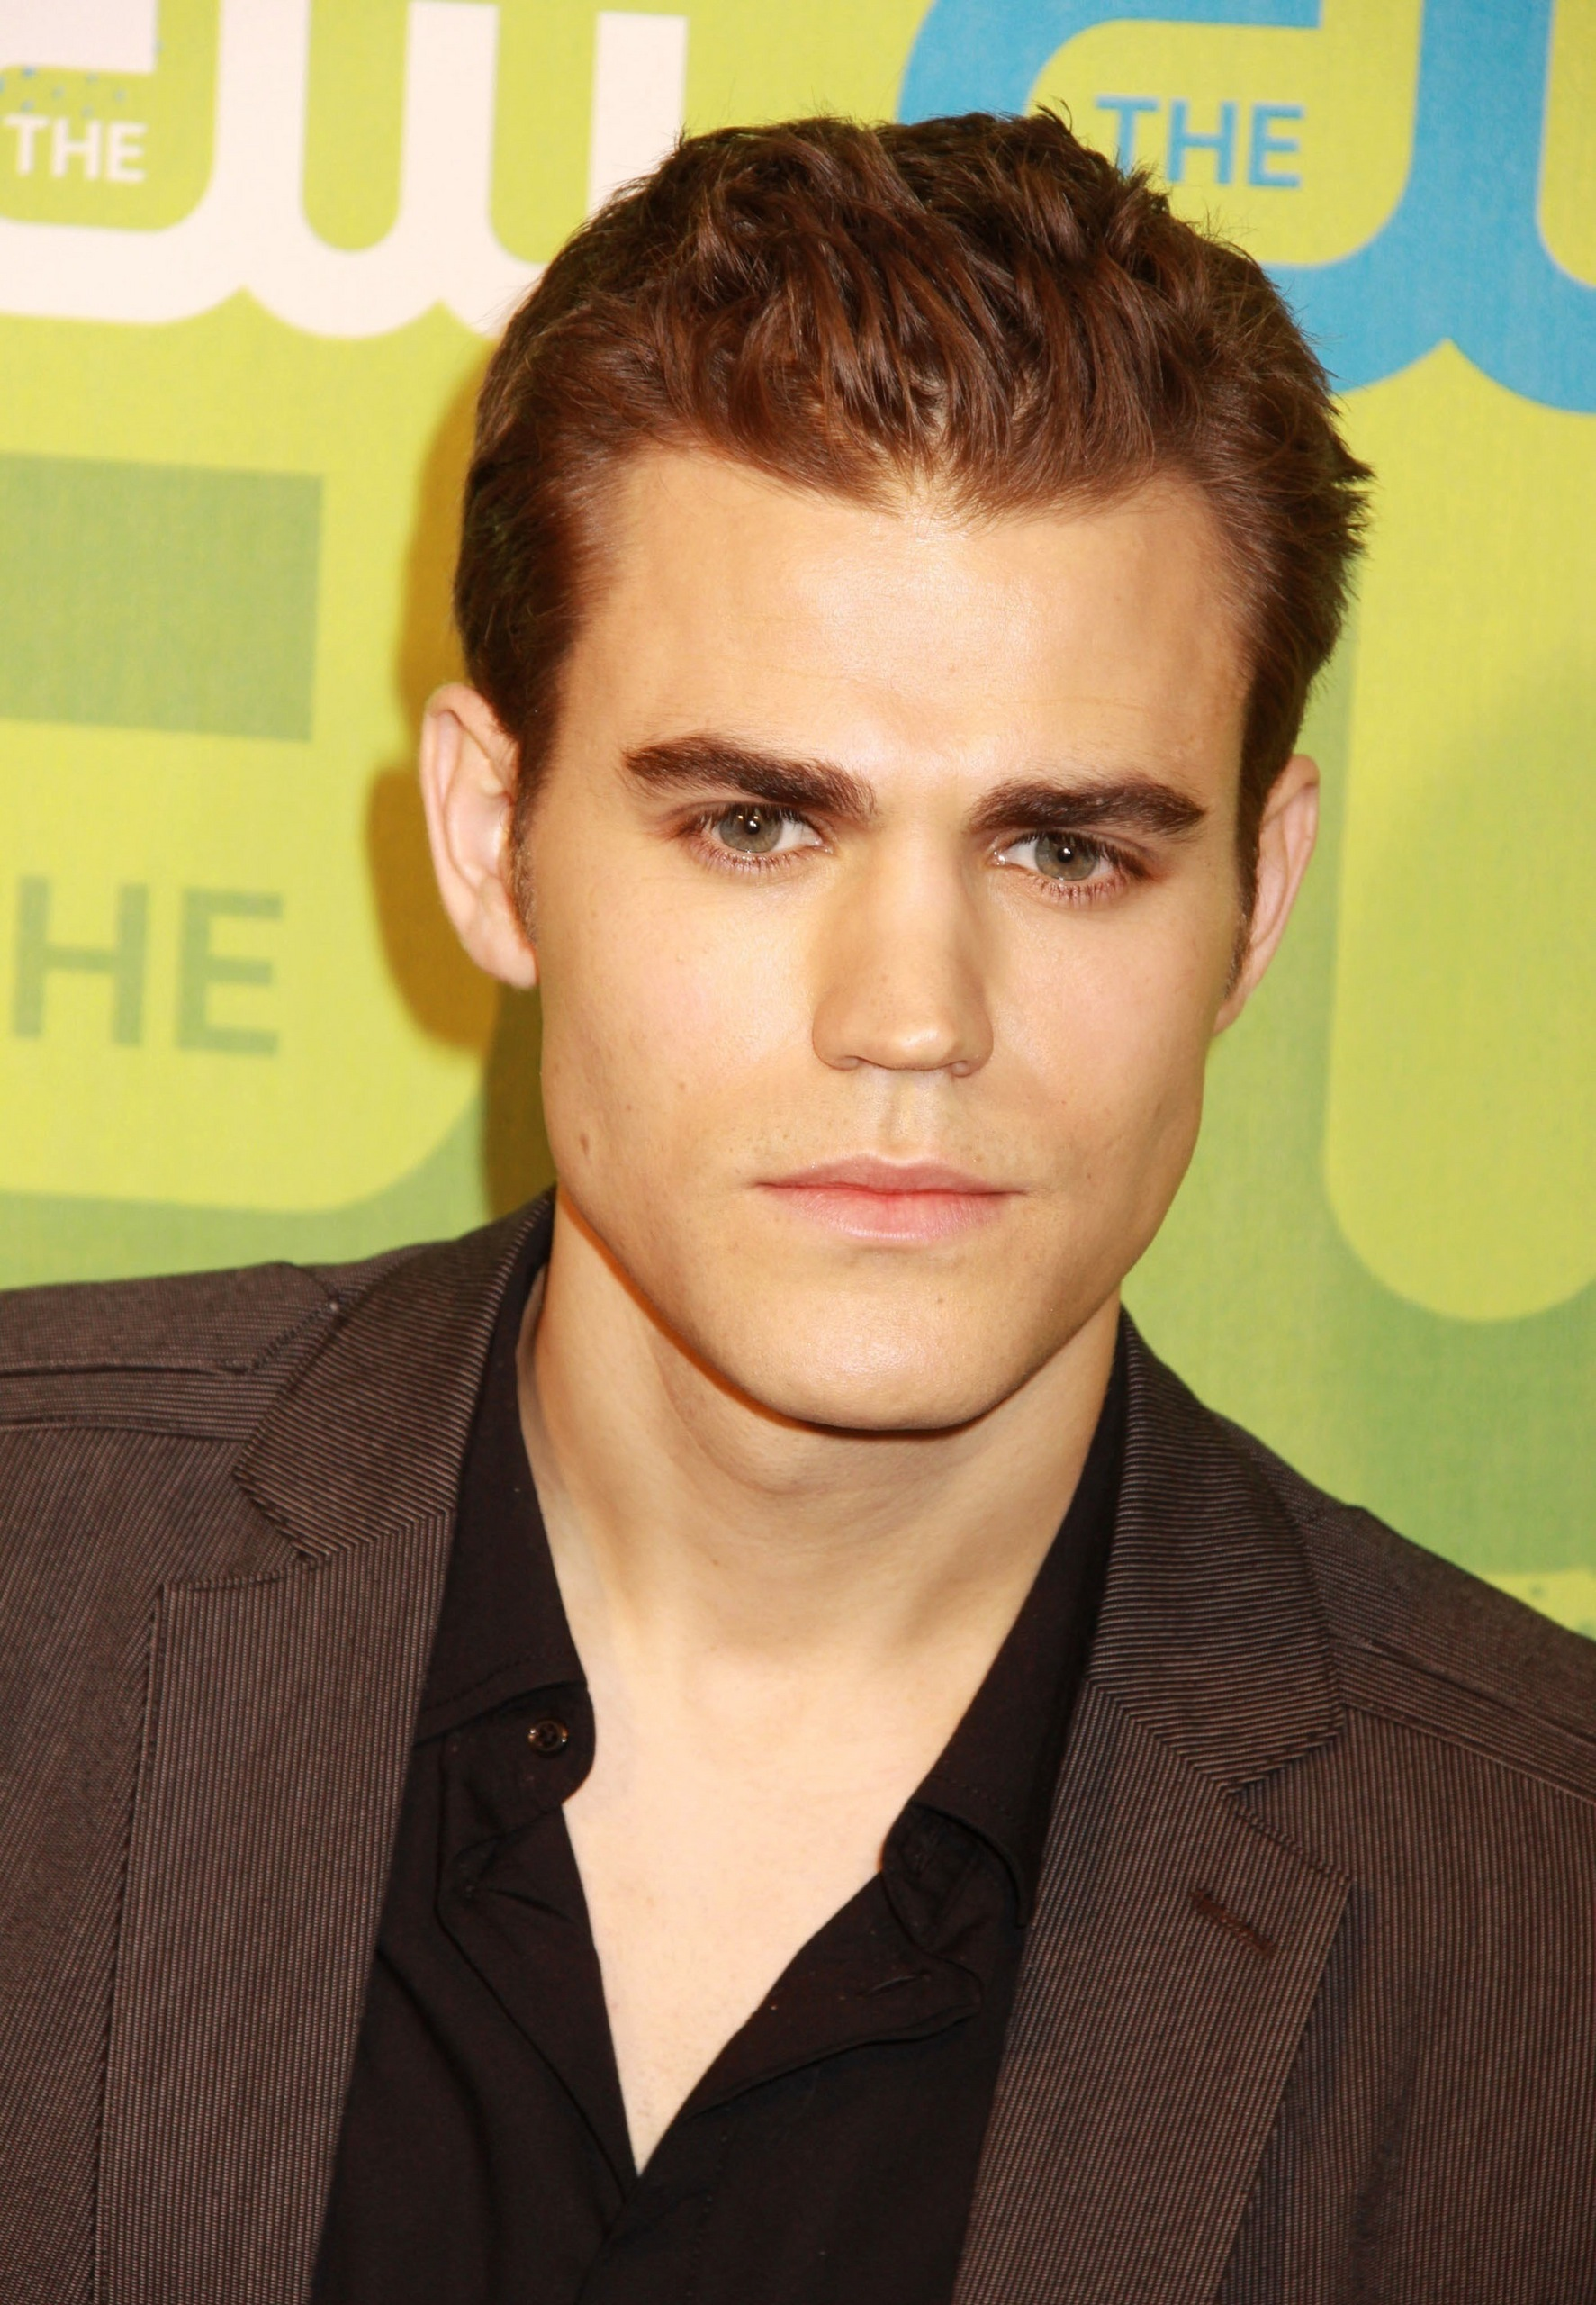 Paul Wesley - Wallpaper Gallery